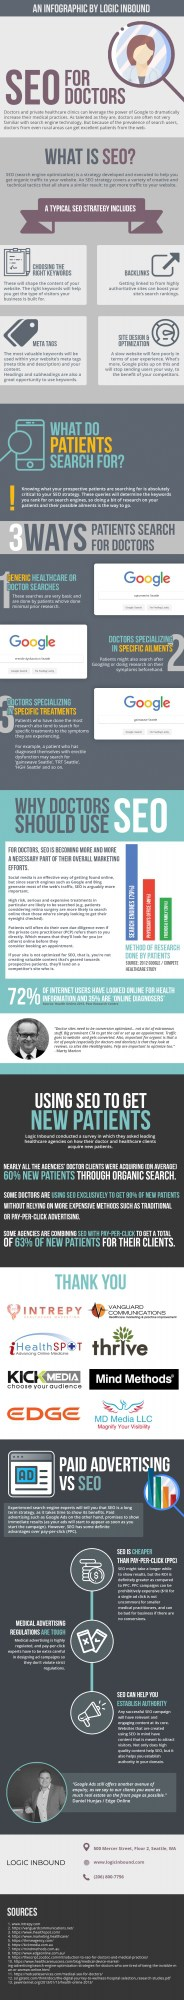 SEO For Doctors, SEO for Doctors – Infographic